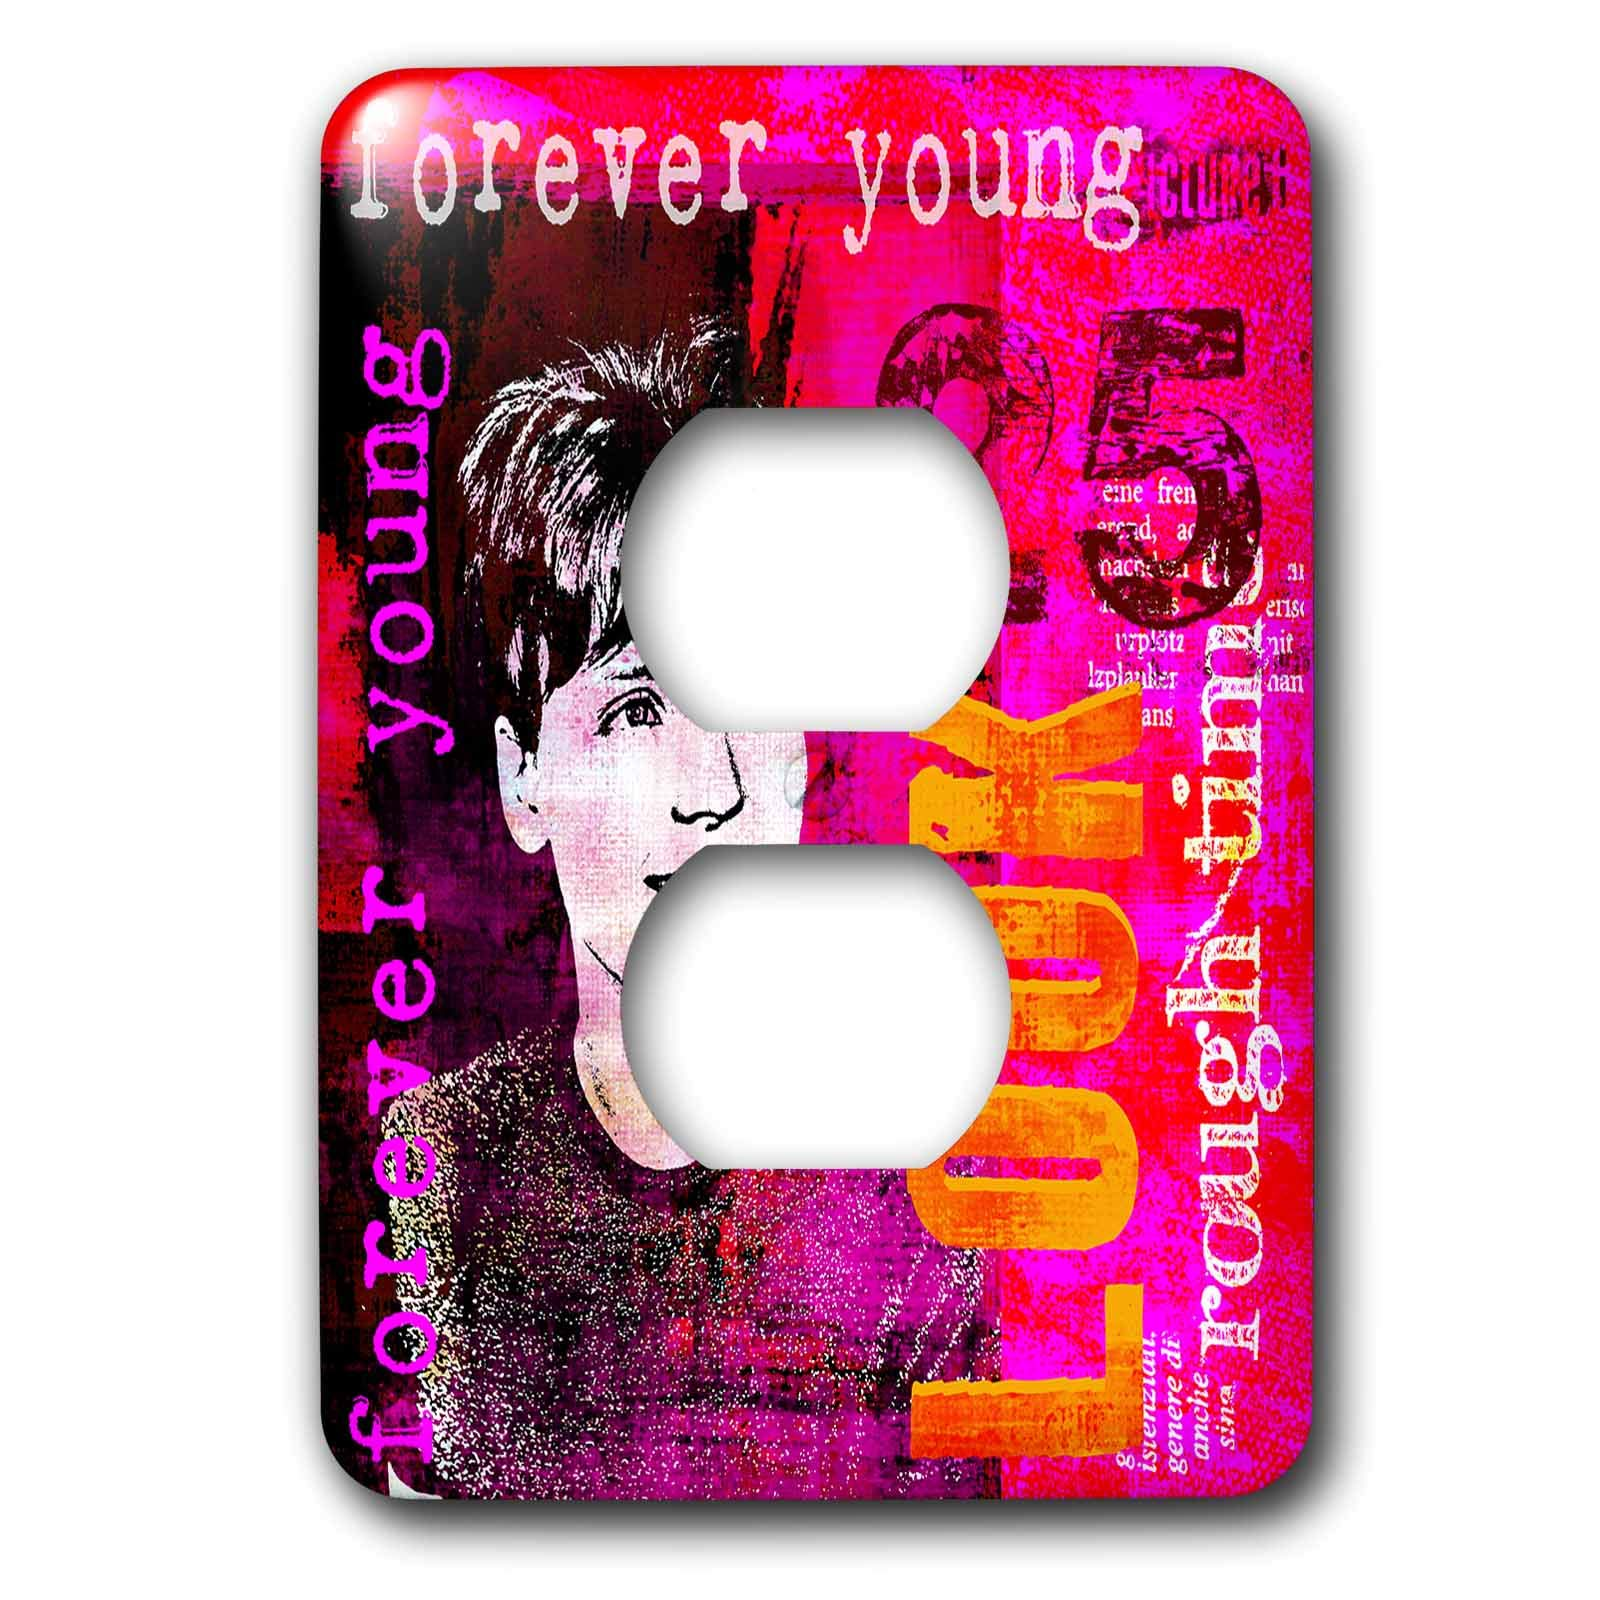 3dRose Andrea Haase Art Illustration - Retro Women Mixed Media Art With Text Elements - Light Switch Covers - 2 plug outlet cover (lsp_289341_6)